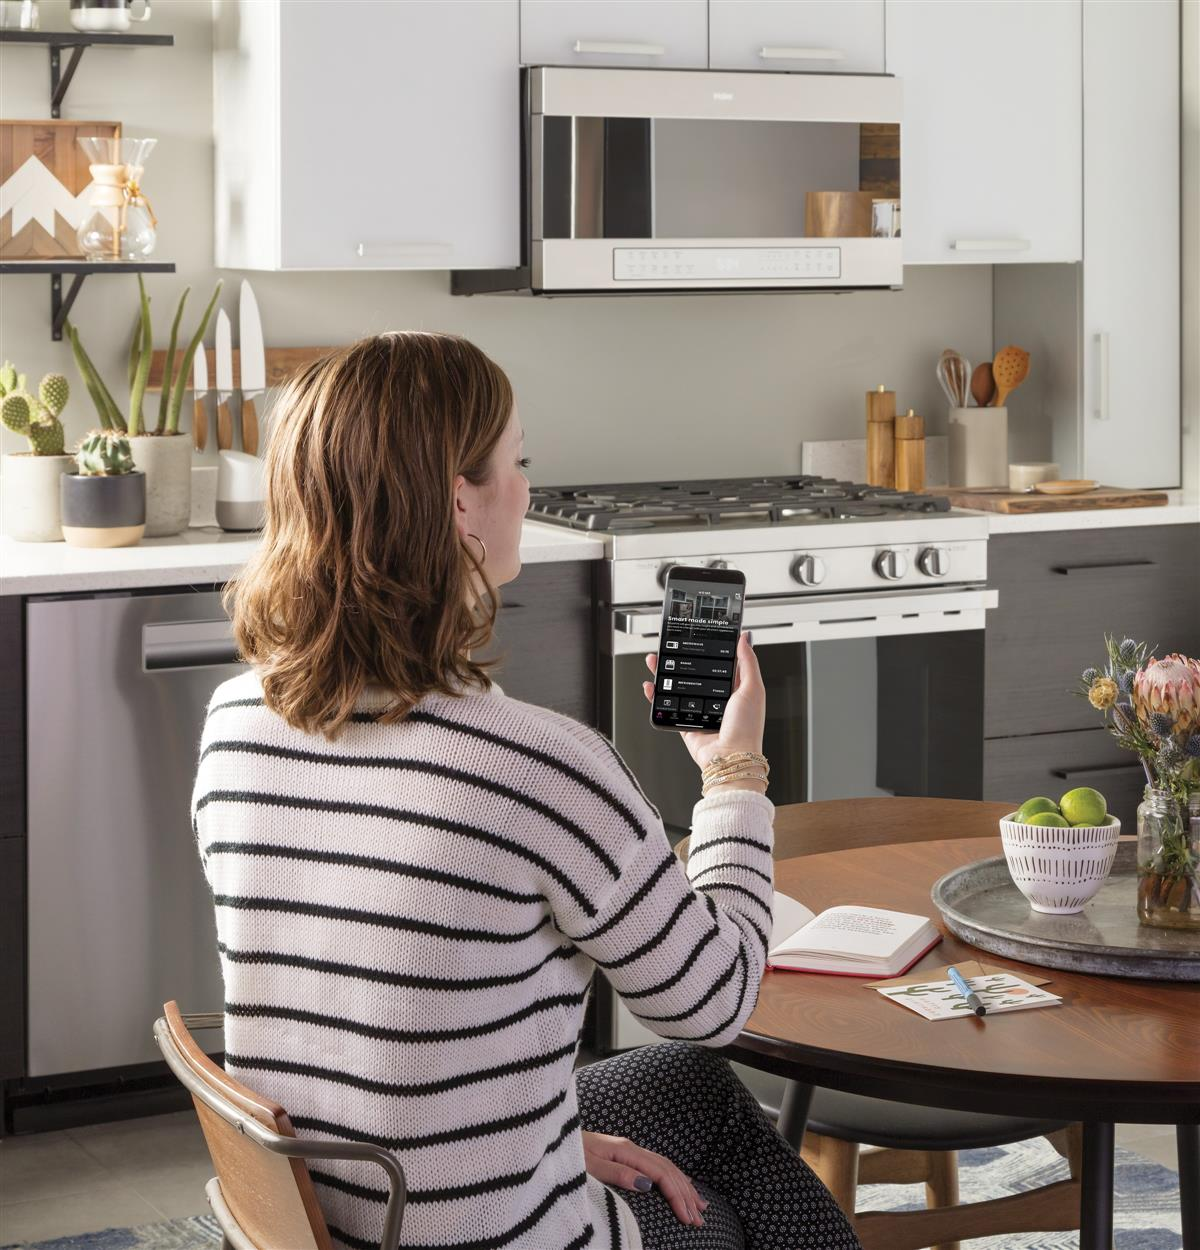 Stay connected, wherever you are. Communicate with your over-the-range appliance through your smart device, anytime, anywhere.